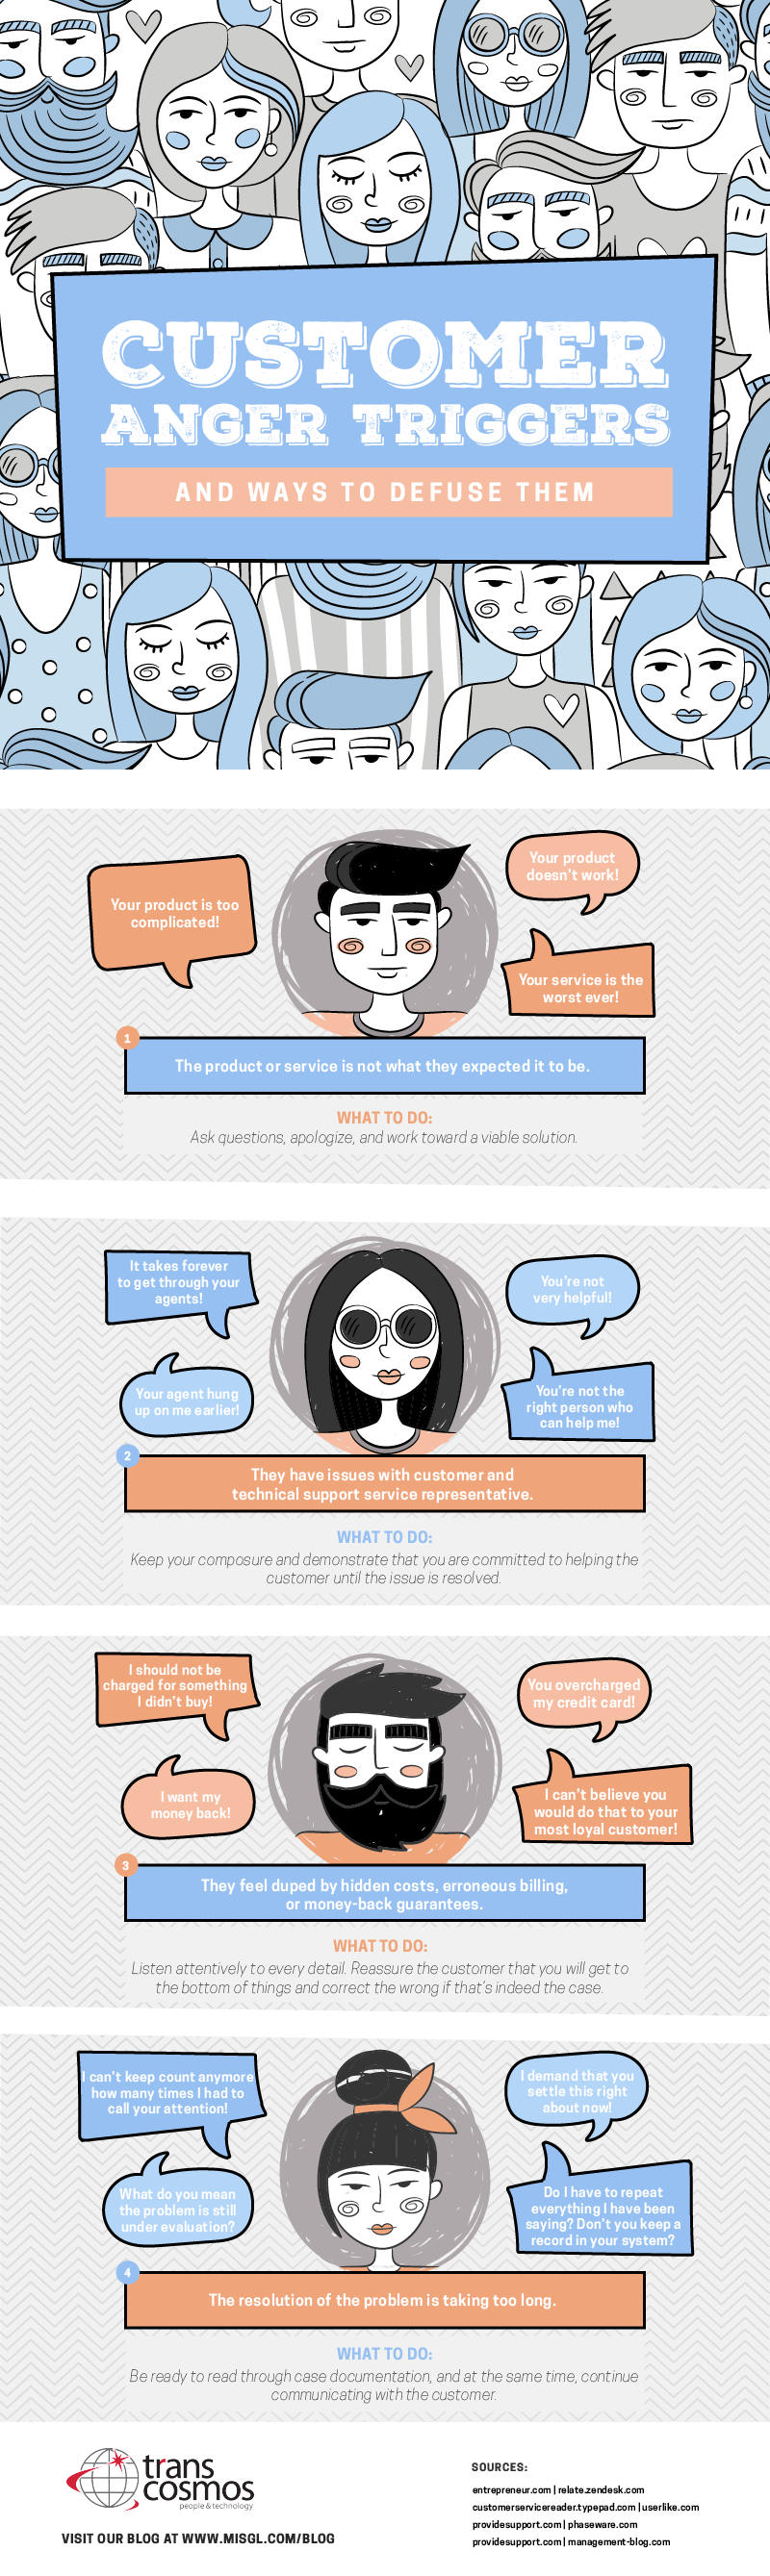 Customer-Anger-Triggers-and-Ways-to-Defuse-Them-infographic